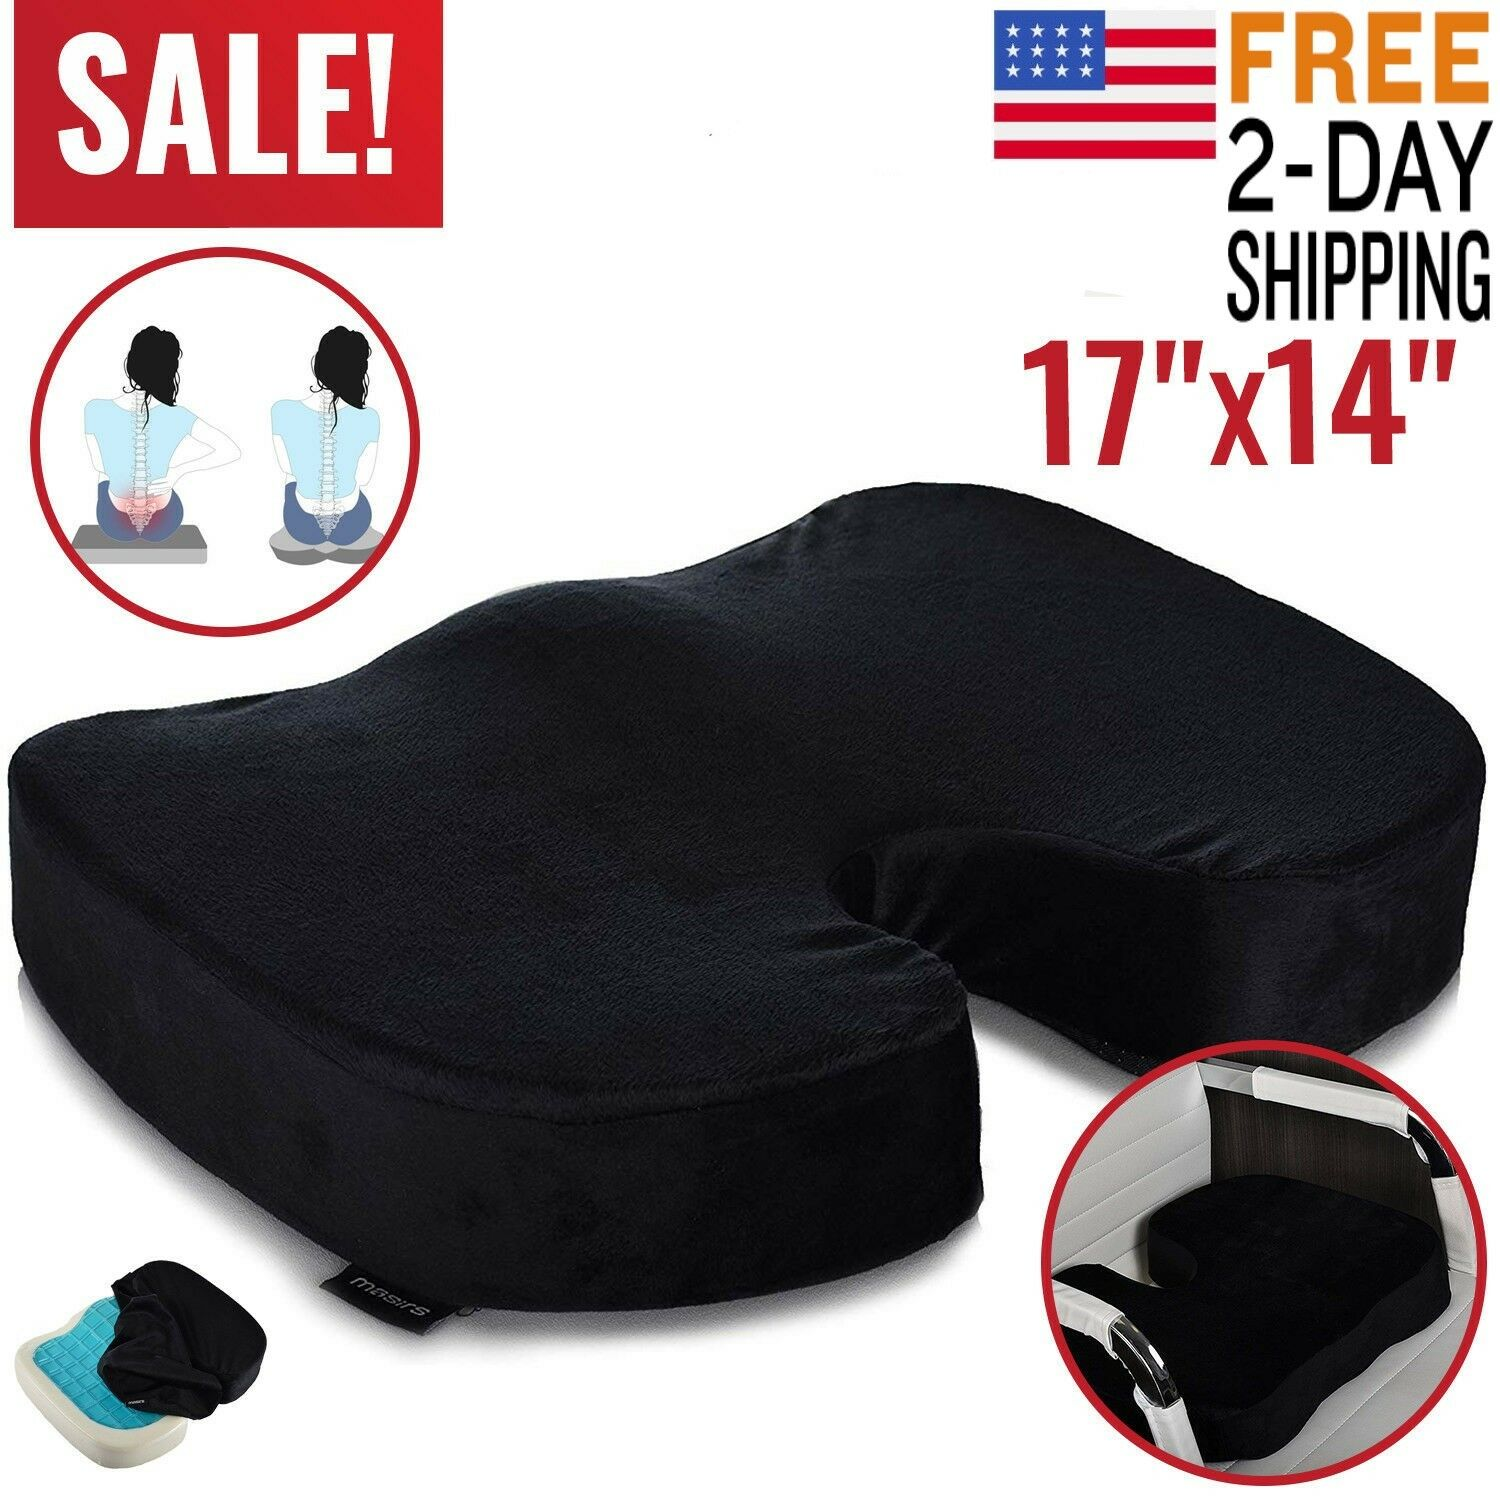 Memory Foam Office Chair Cushion Car Seat Pillow Coccyx Orth